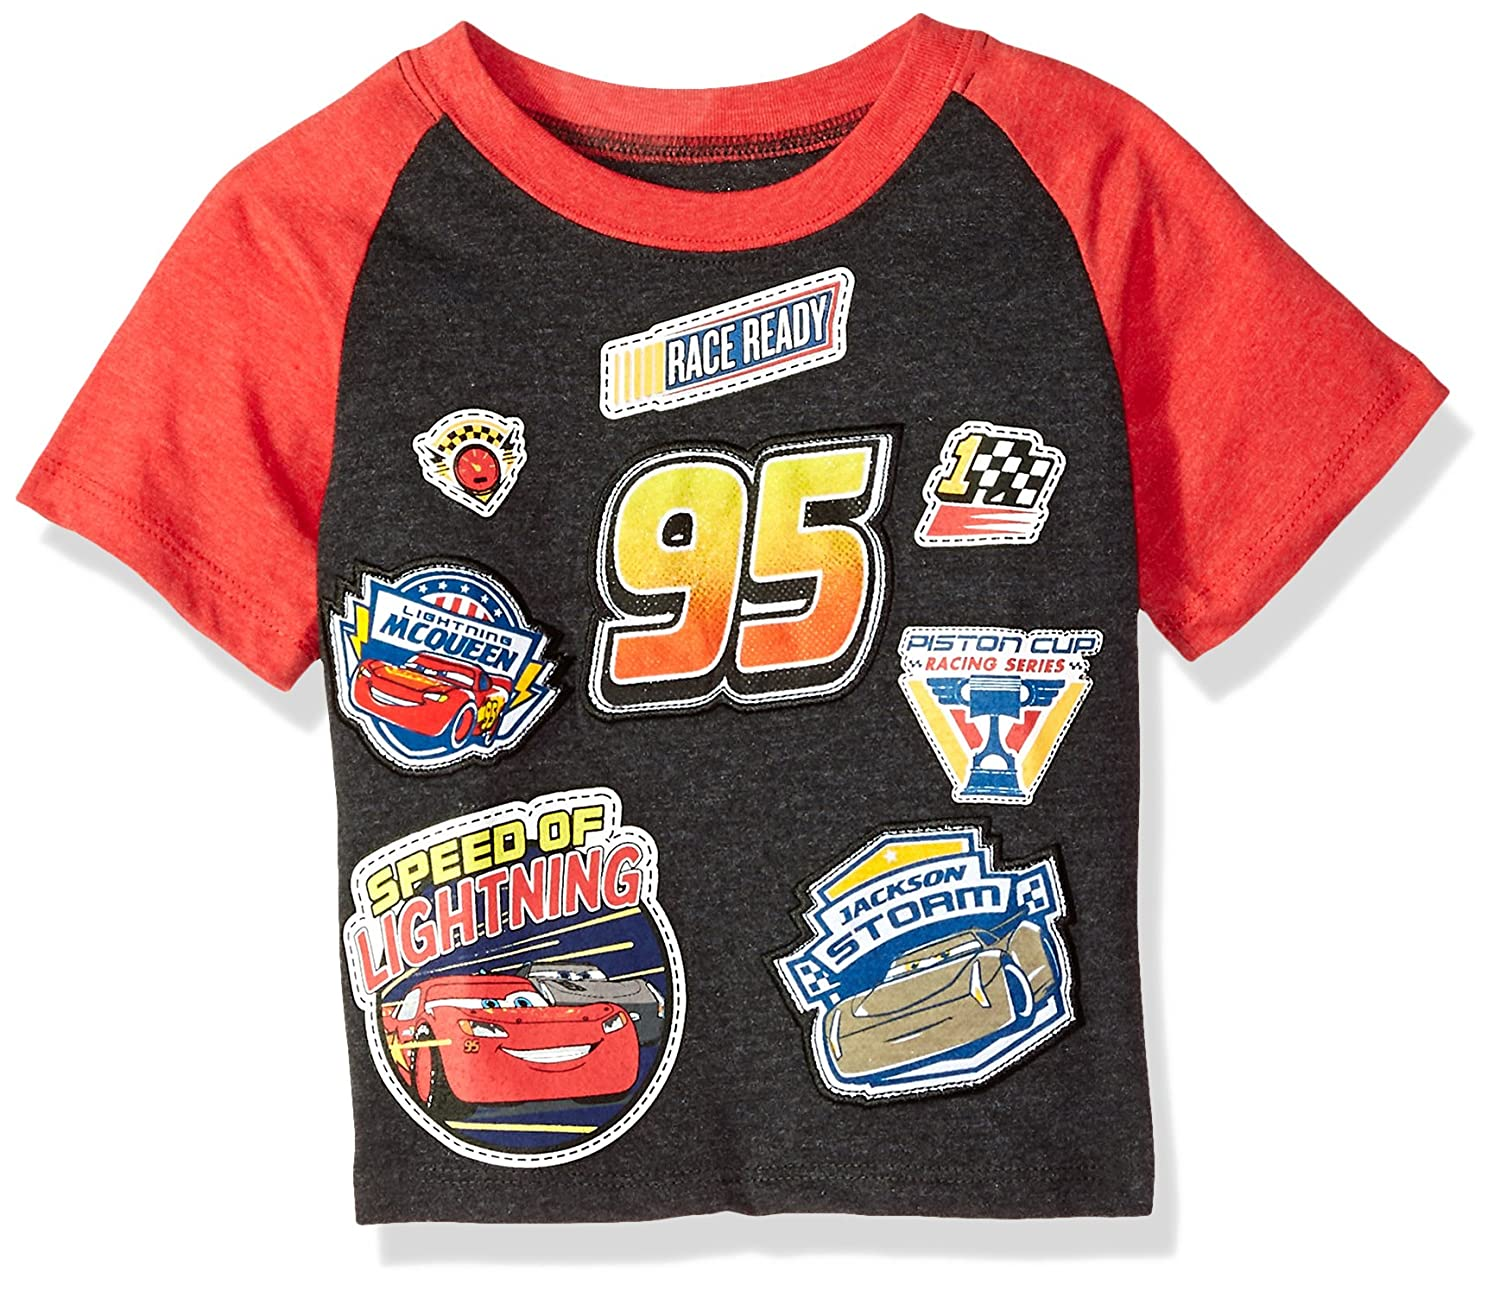 f213596bc662 Cars Boys Patch Toddler Boys Short Sleeve T-Shirt T-Shirt: Amazon.ca:  Clothing & Accessories